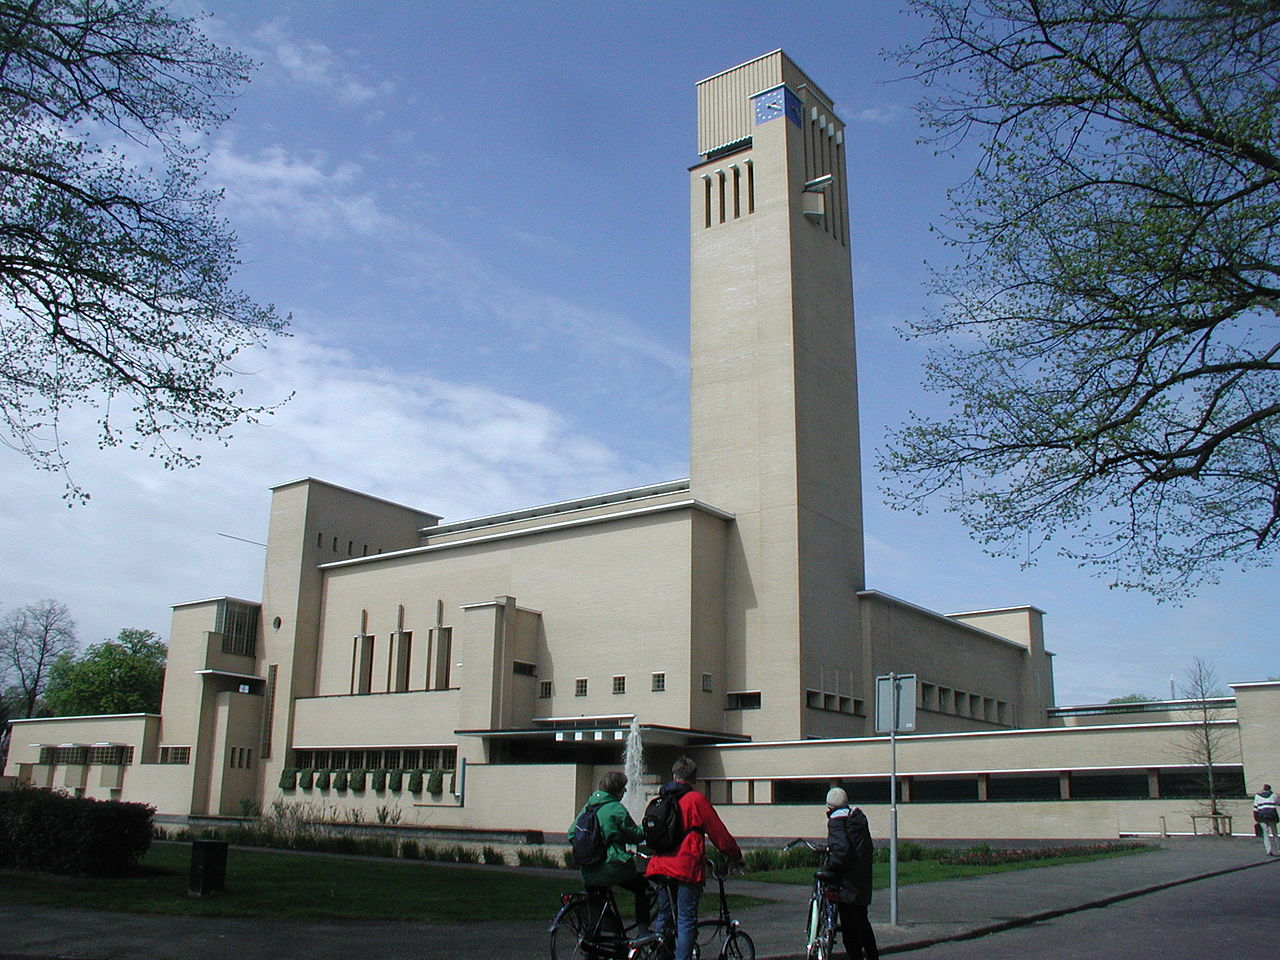 Hilversum Town Hall in 2005. Source: Mfrasca at English Wikipedia